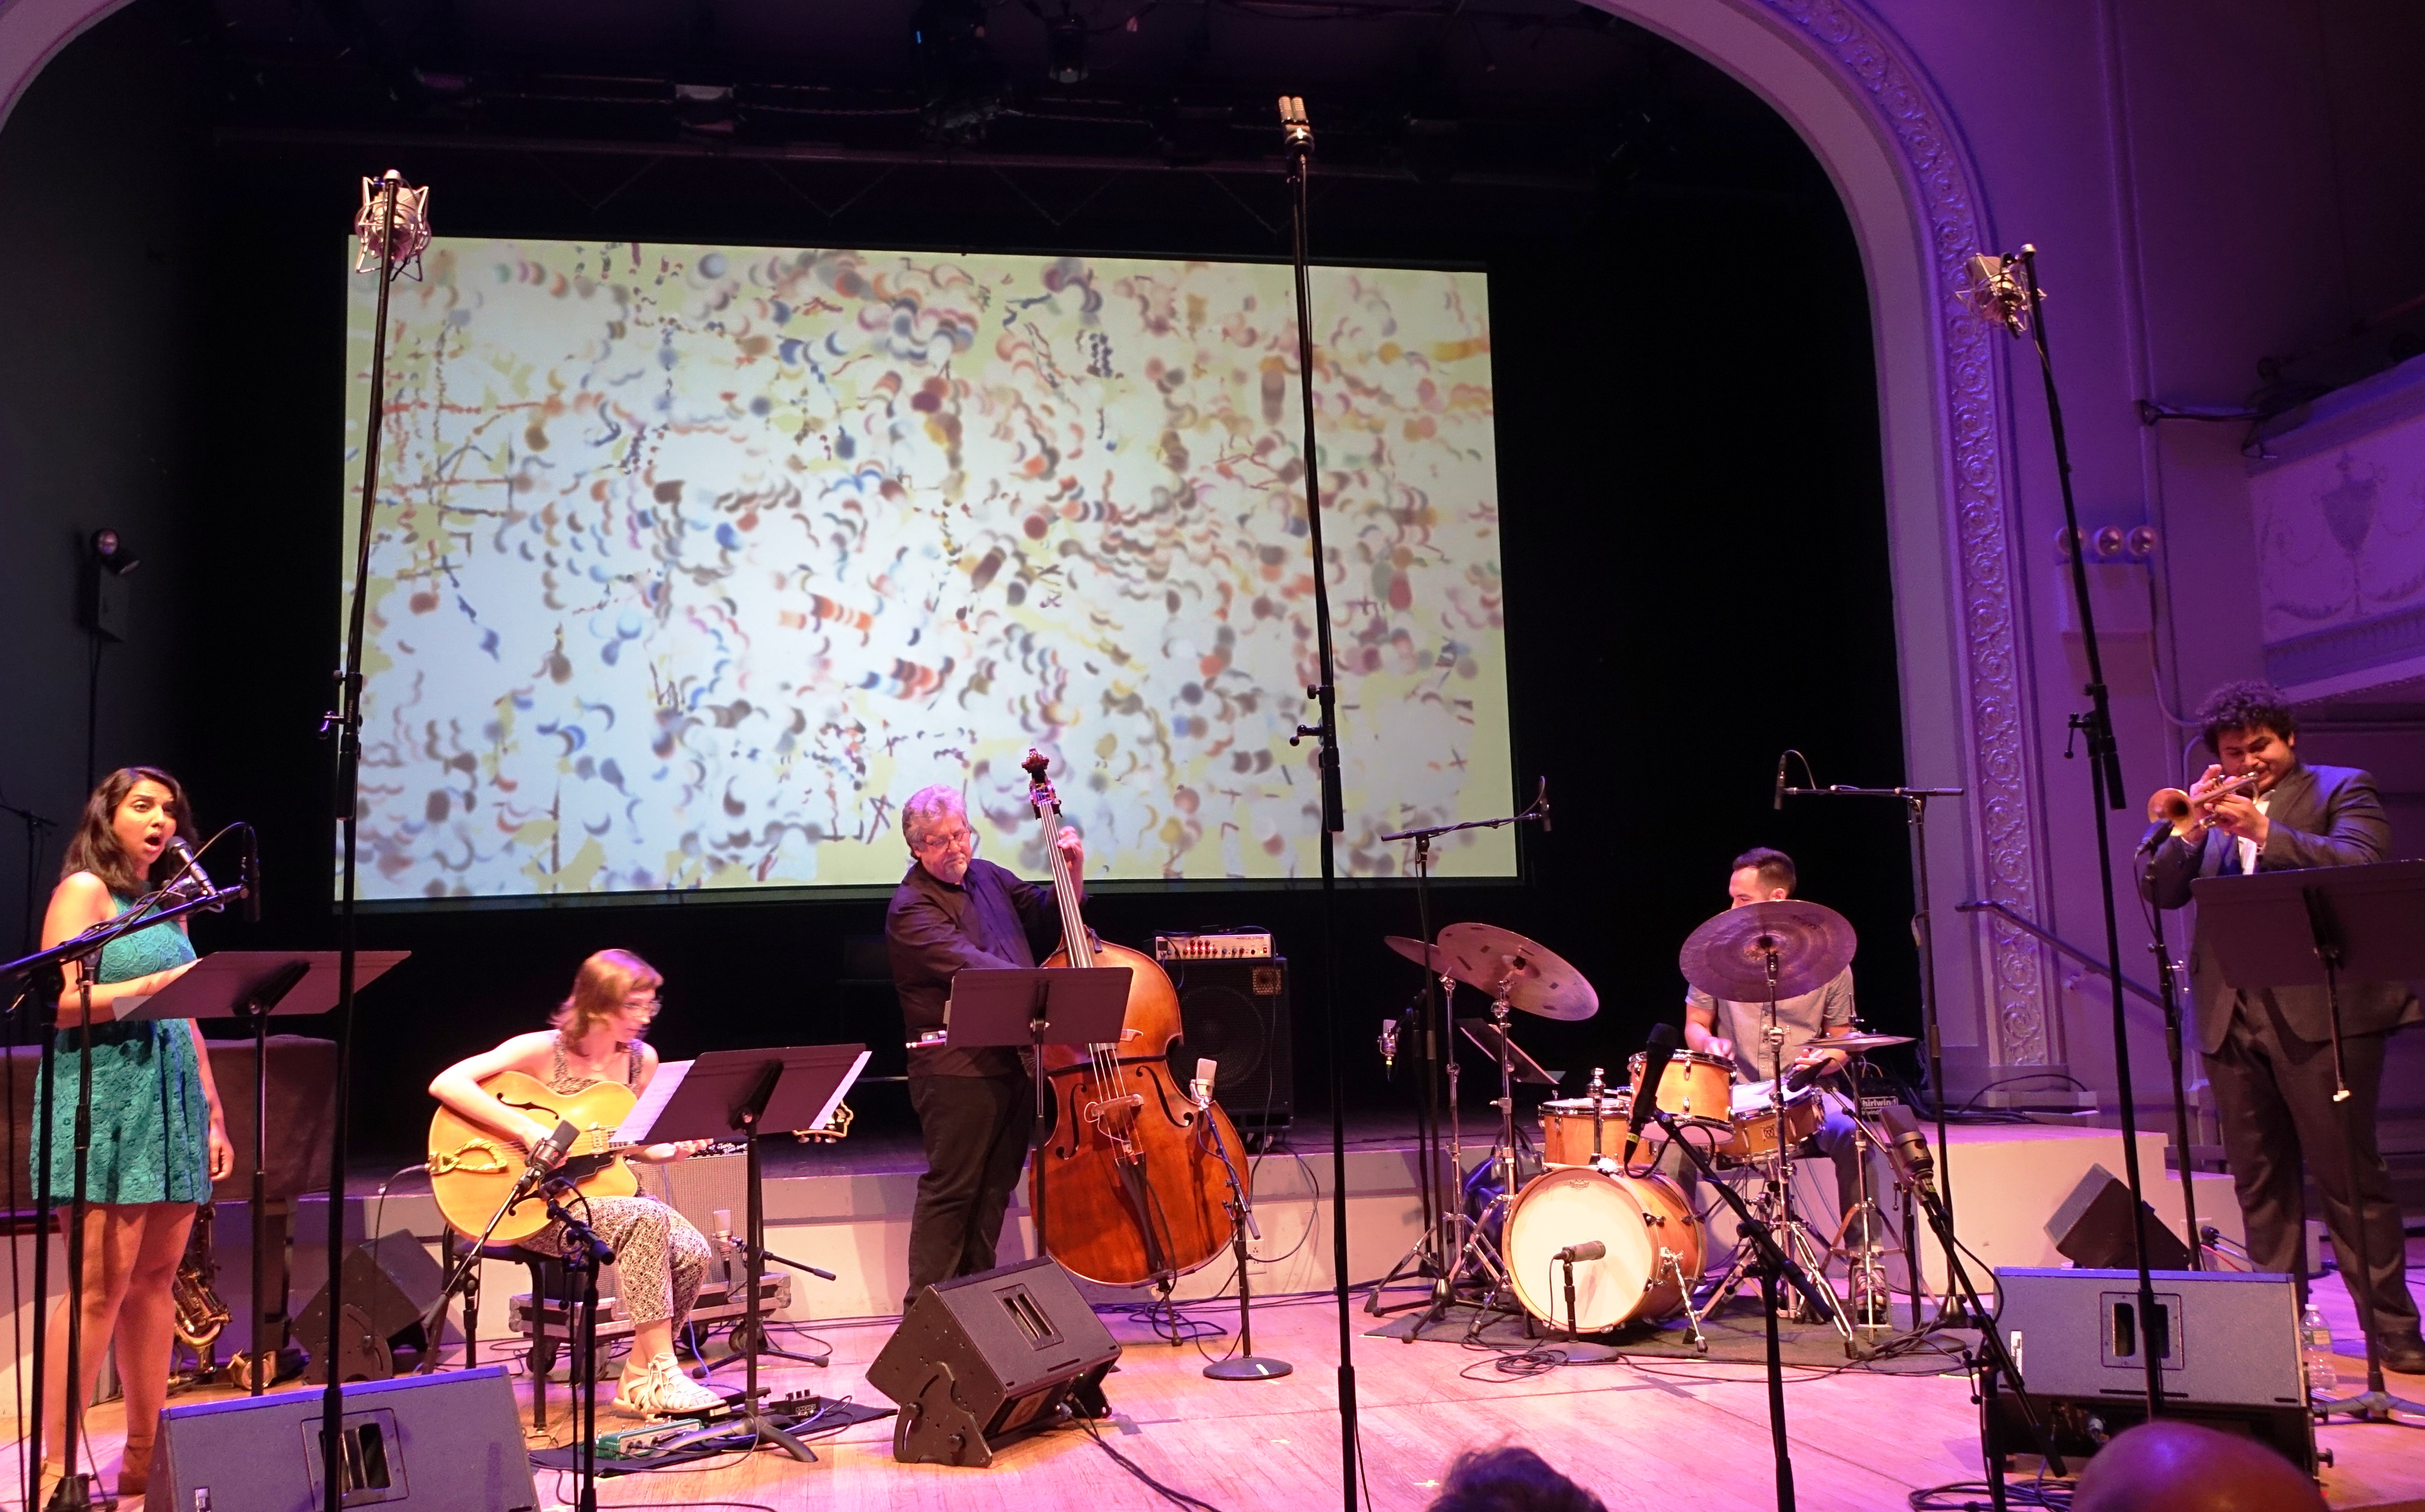 Mary Halvorson's Code Girl at Roulette, Brooklyn in May 2018